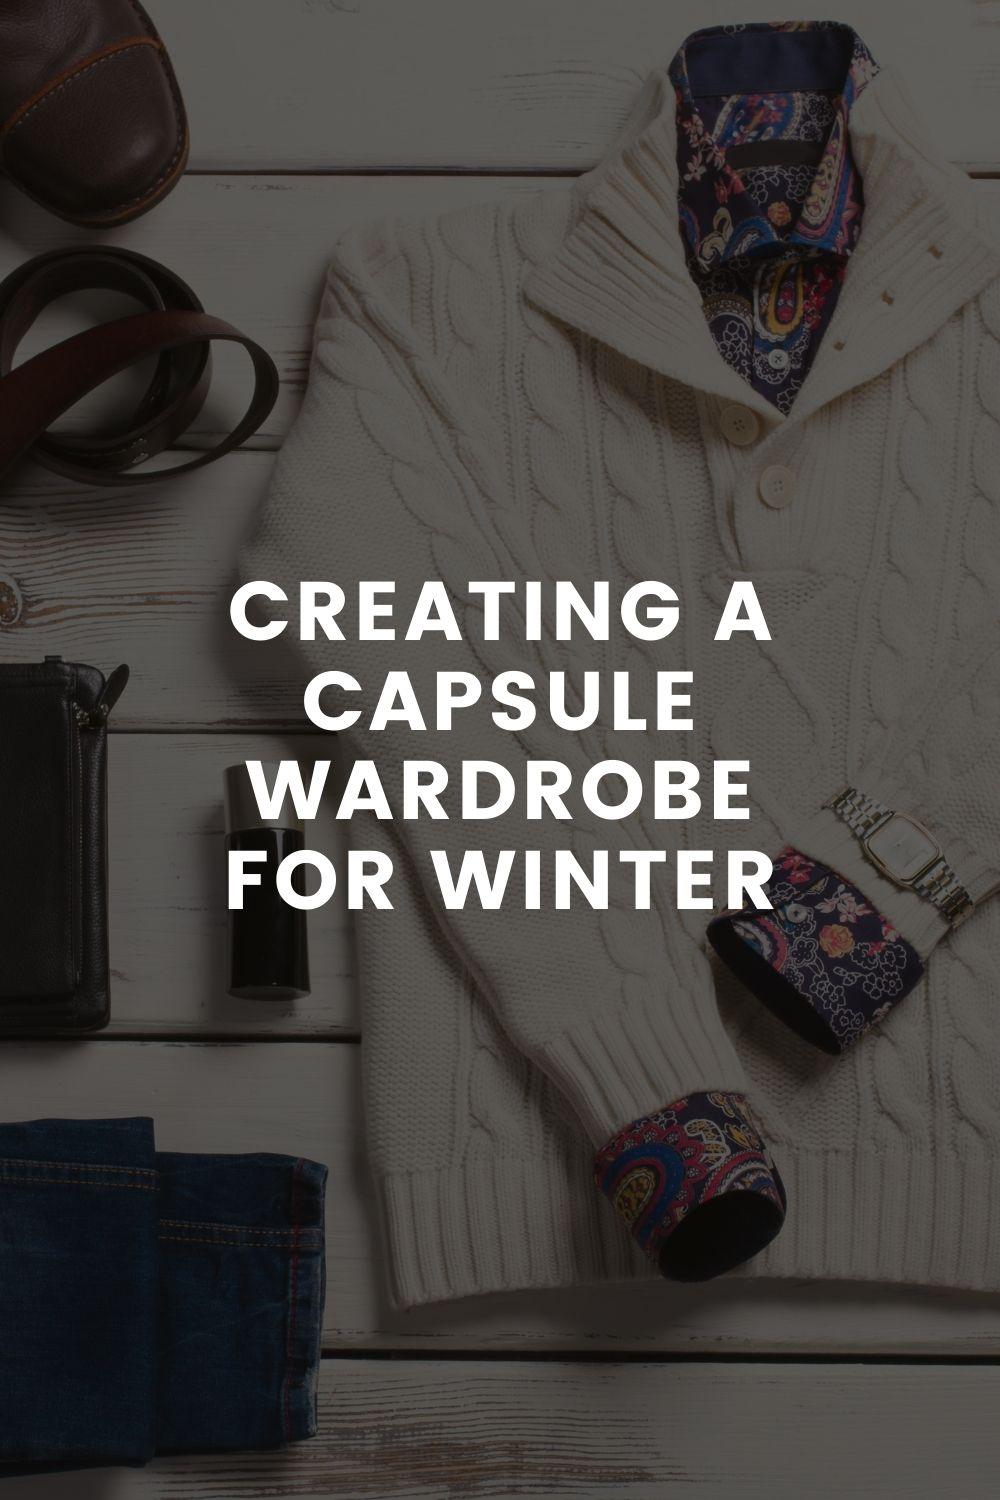 Creating a Capsule Wardrobe For Winter